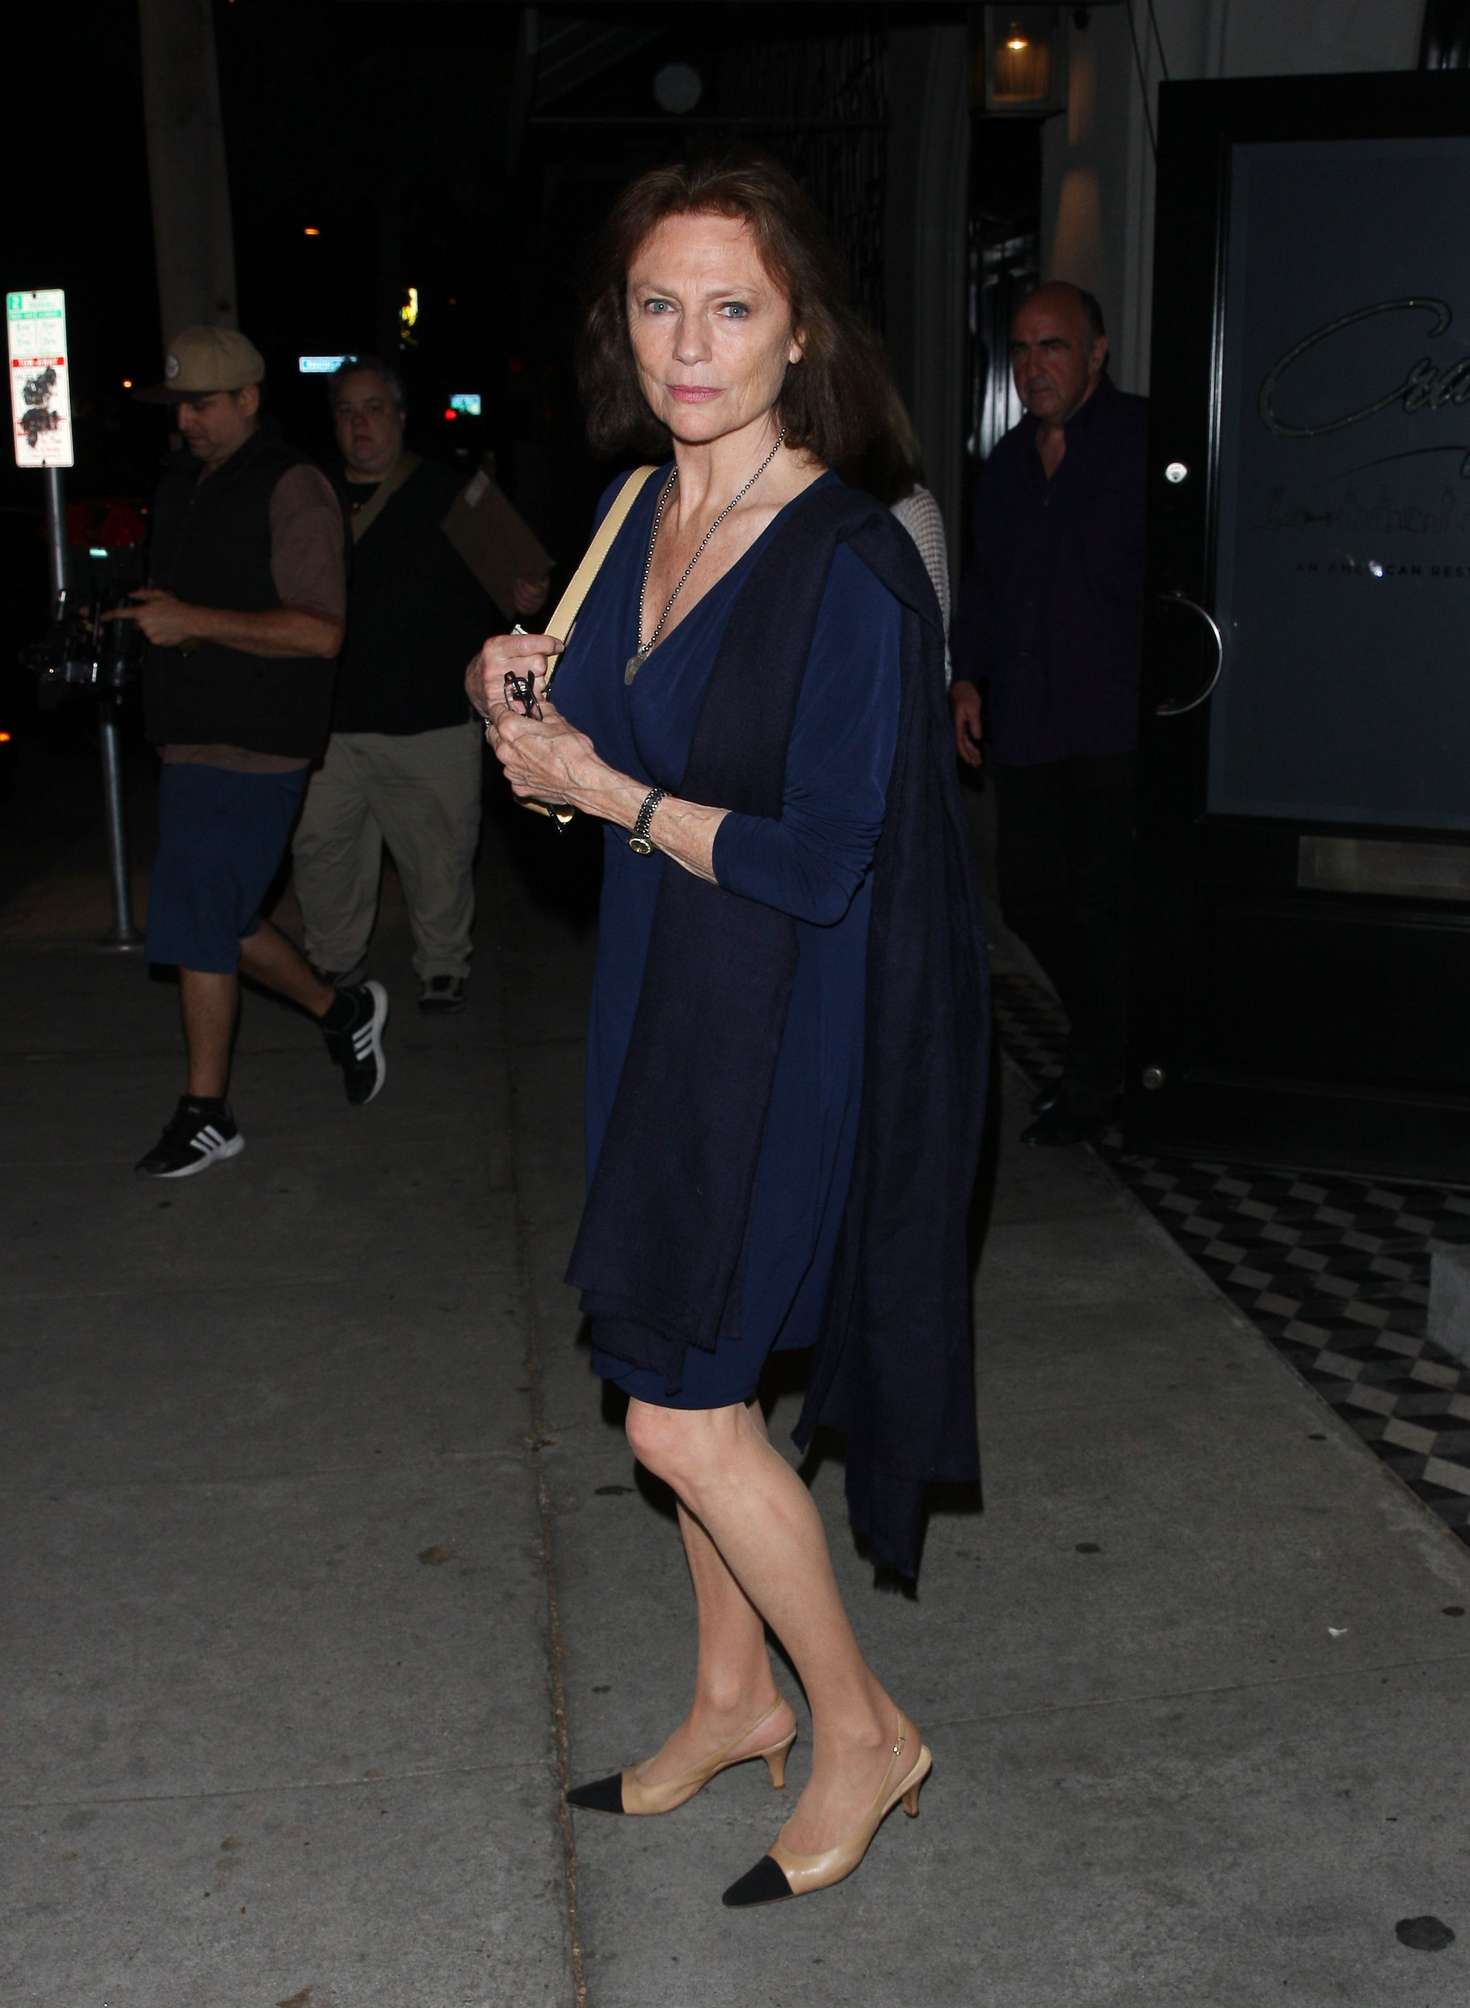 Gabriella Onion Booty with regard to jacqueline bisset at craig's restaurant in west hollywood